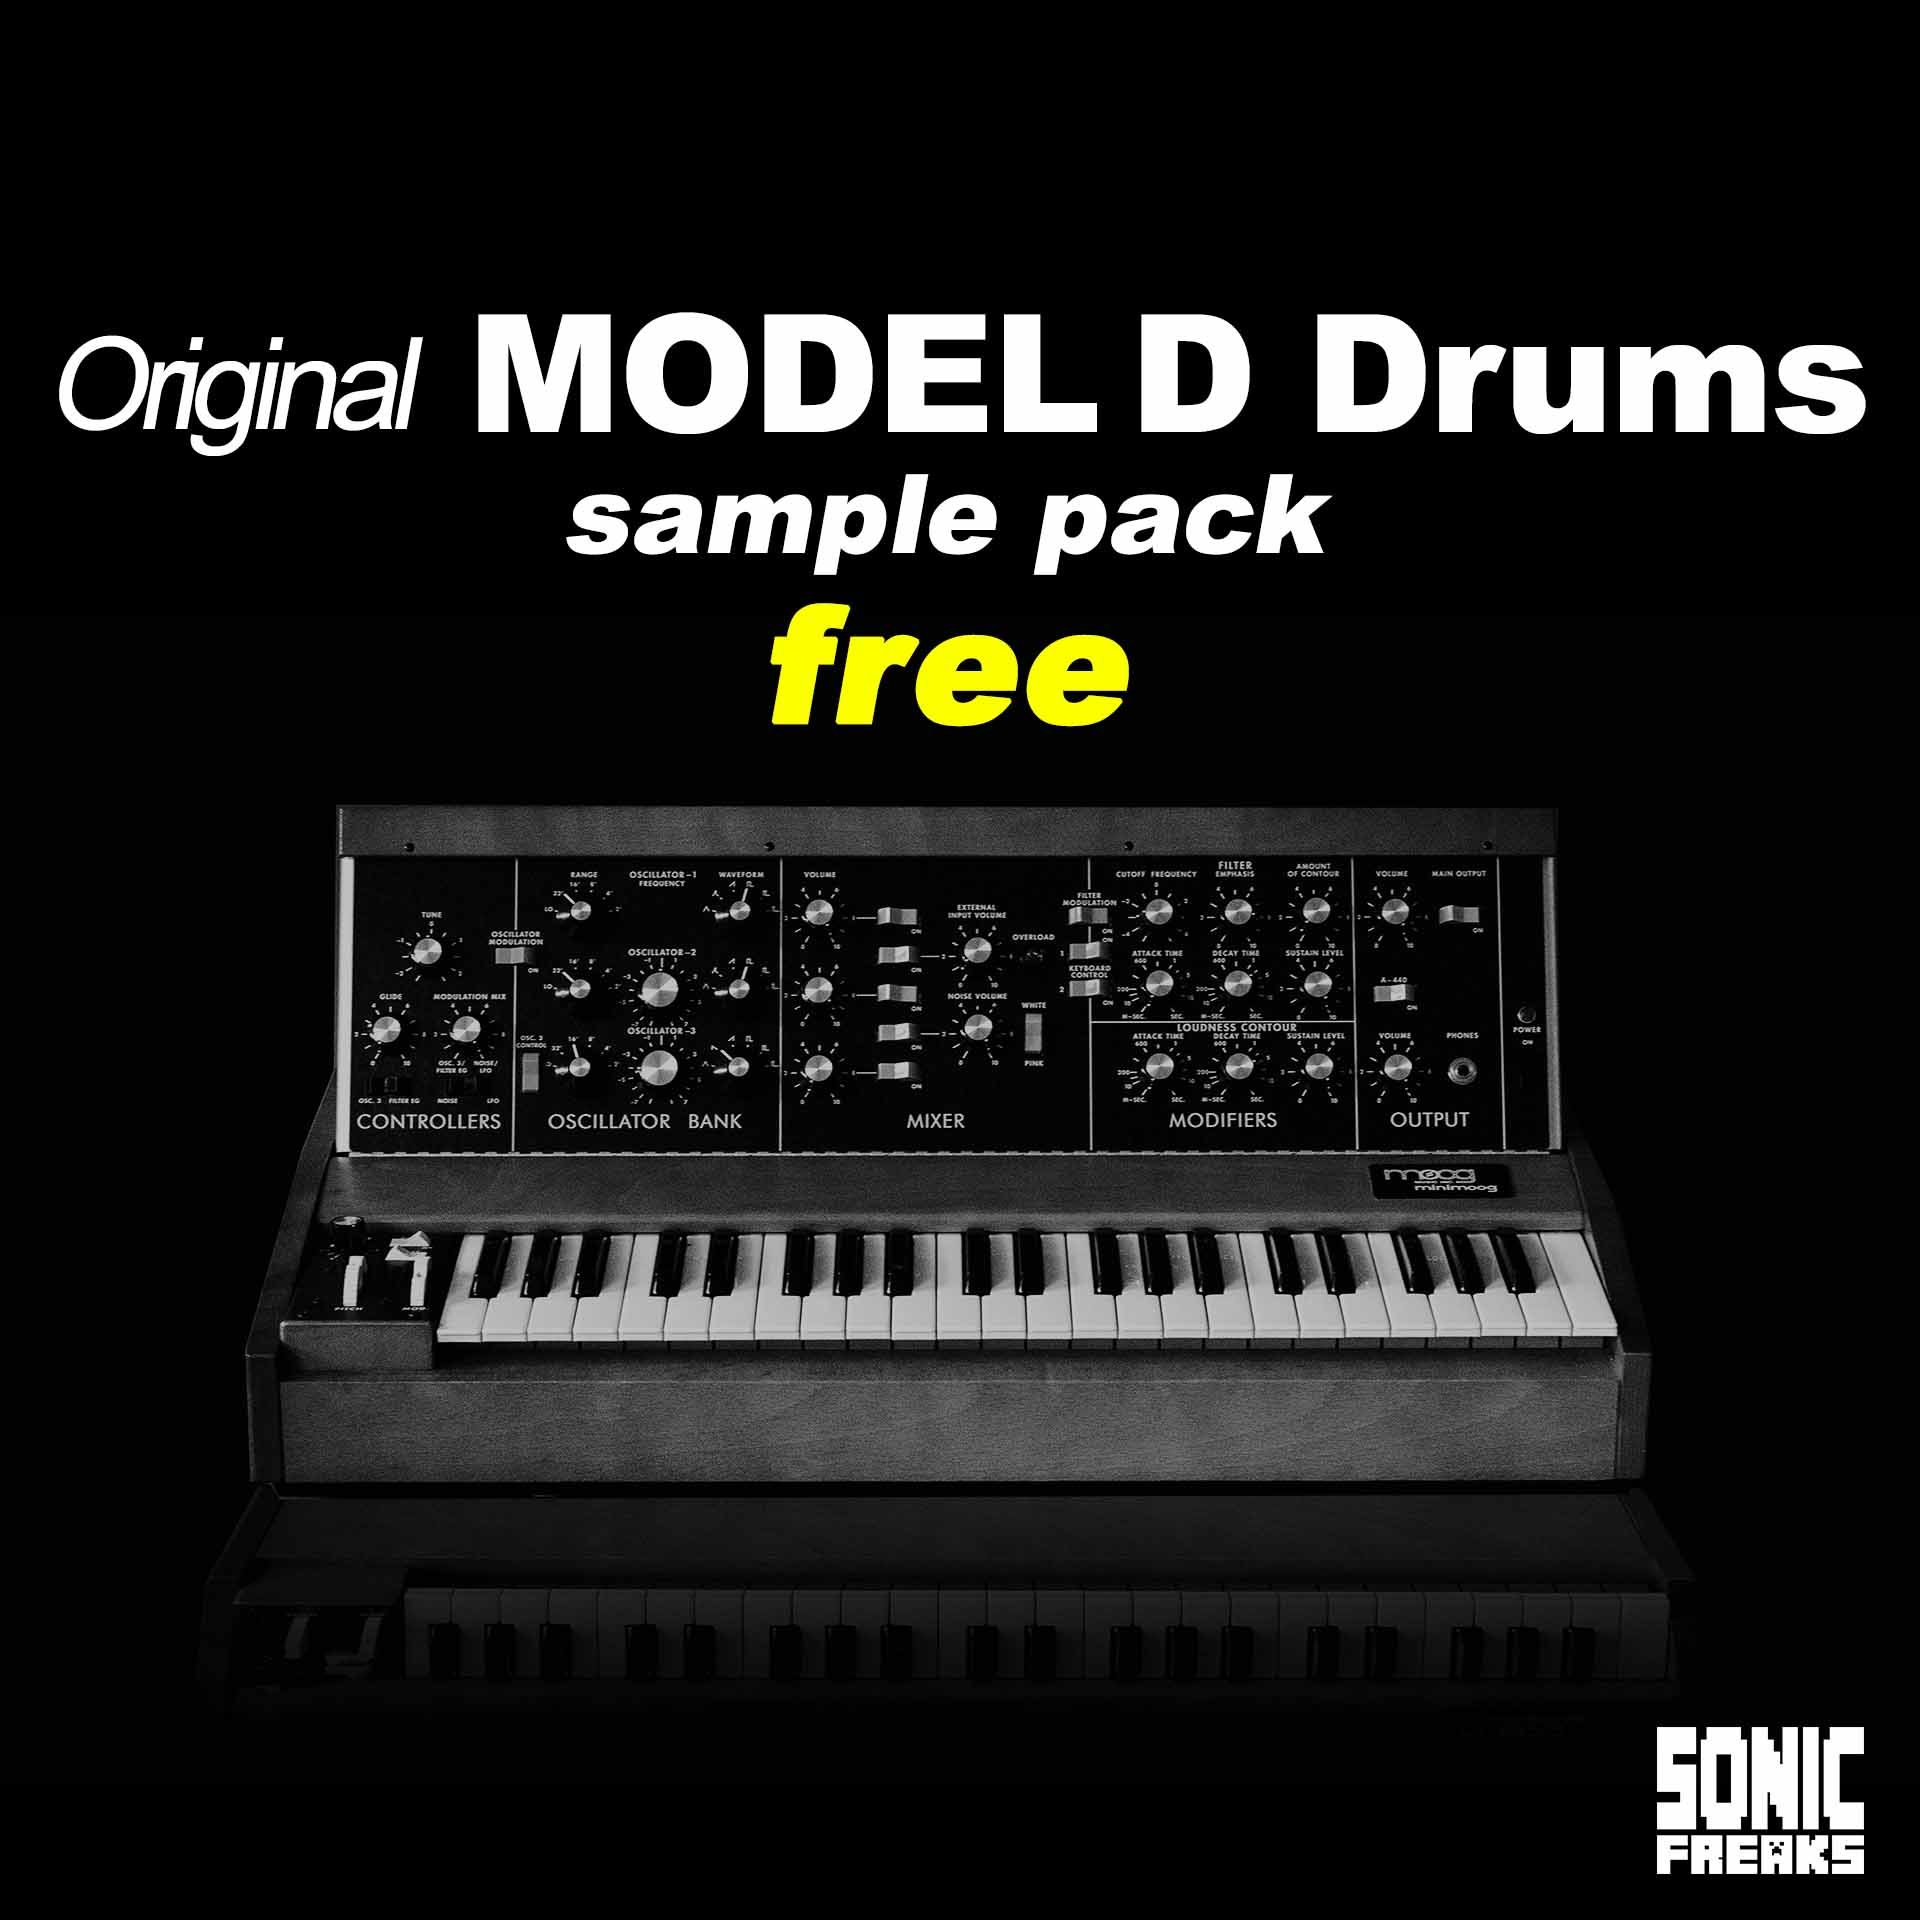 Original Model D Drums